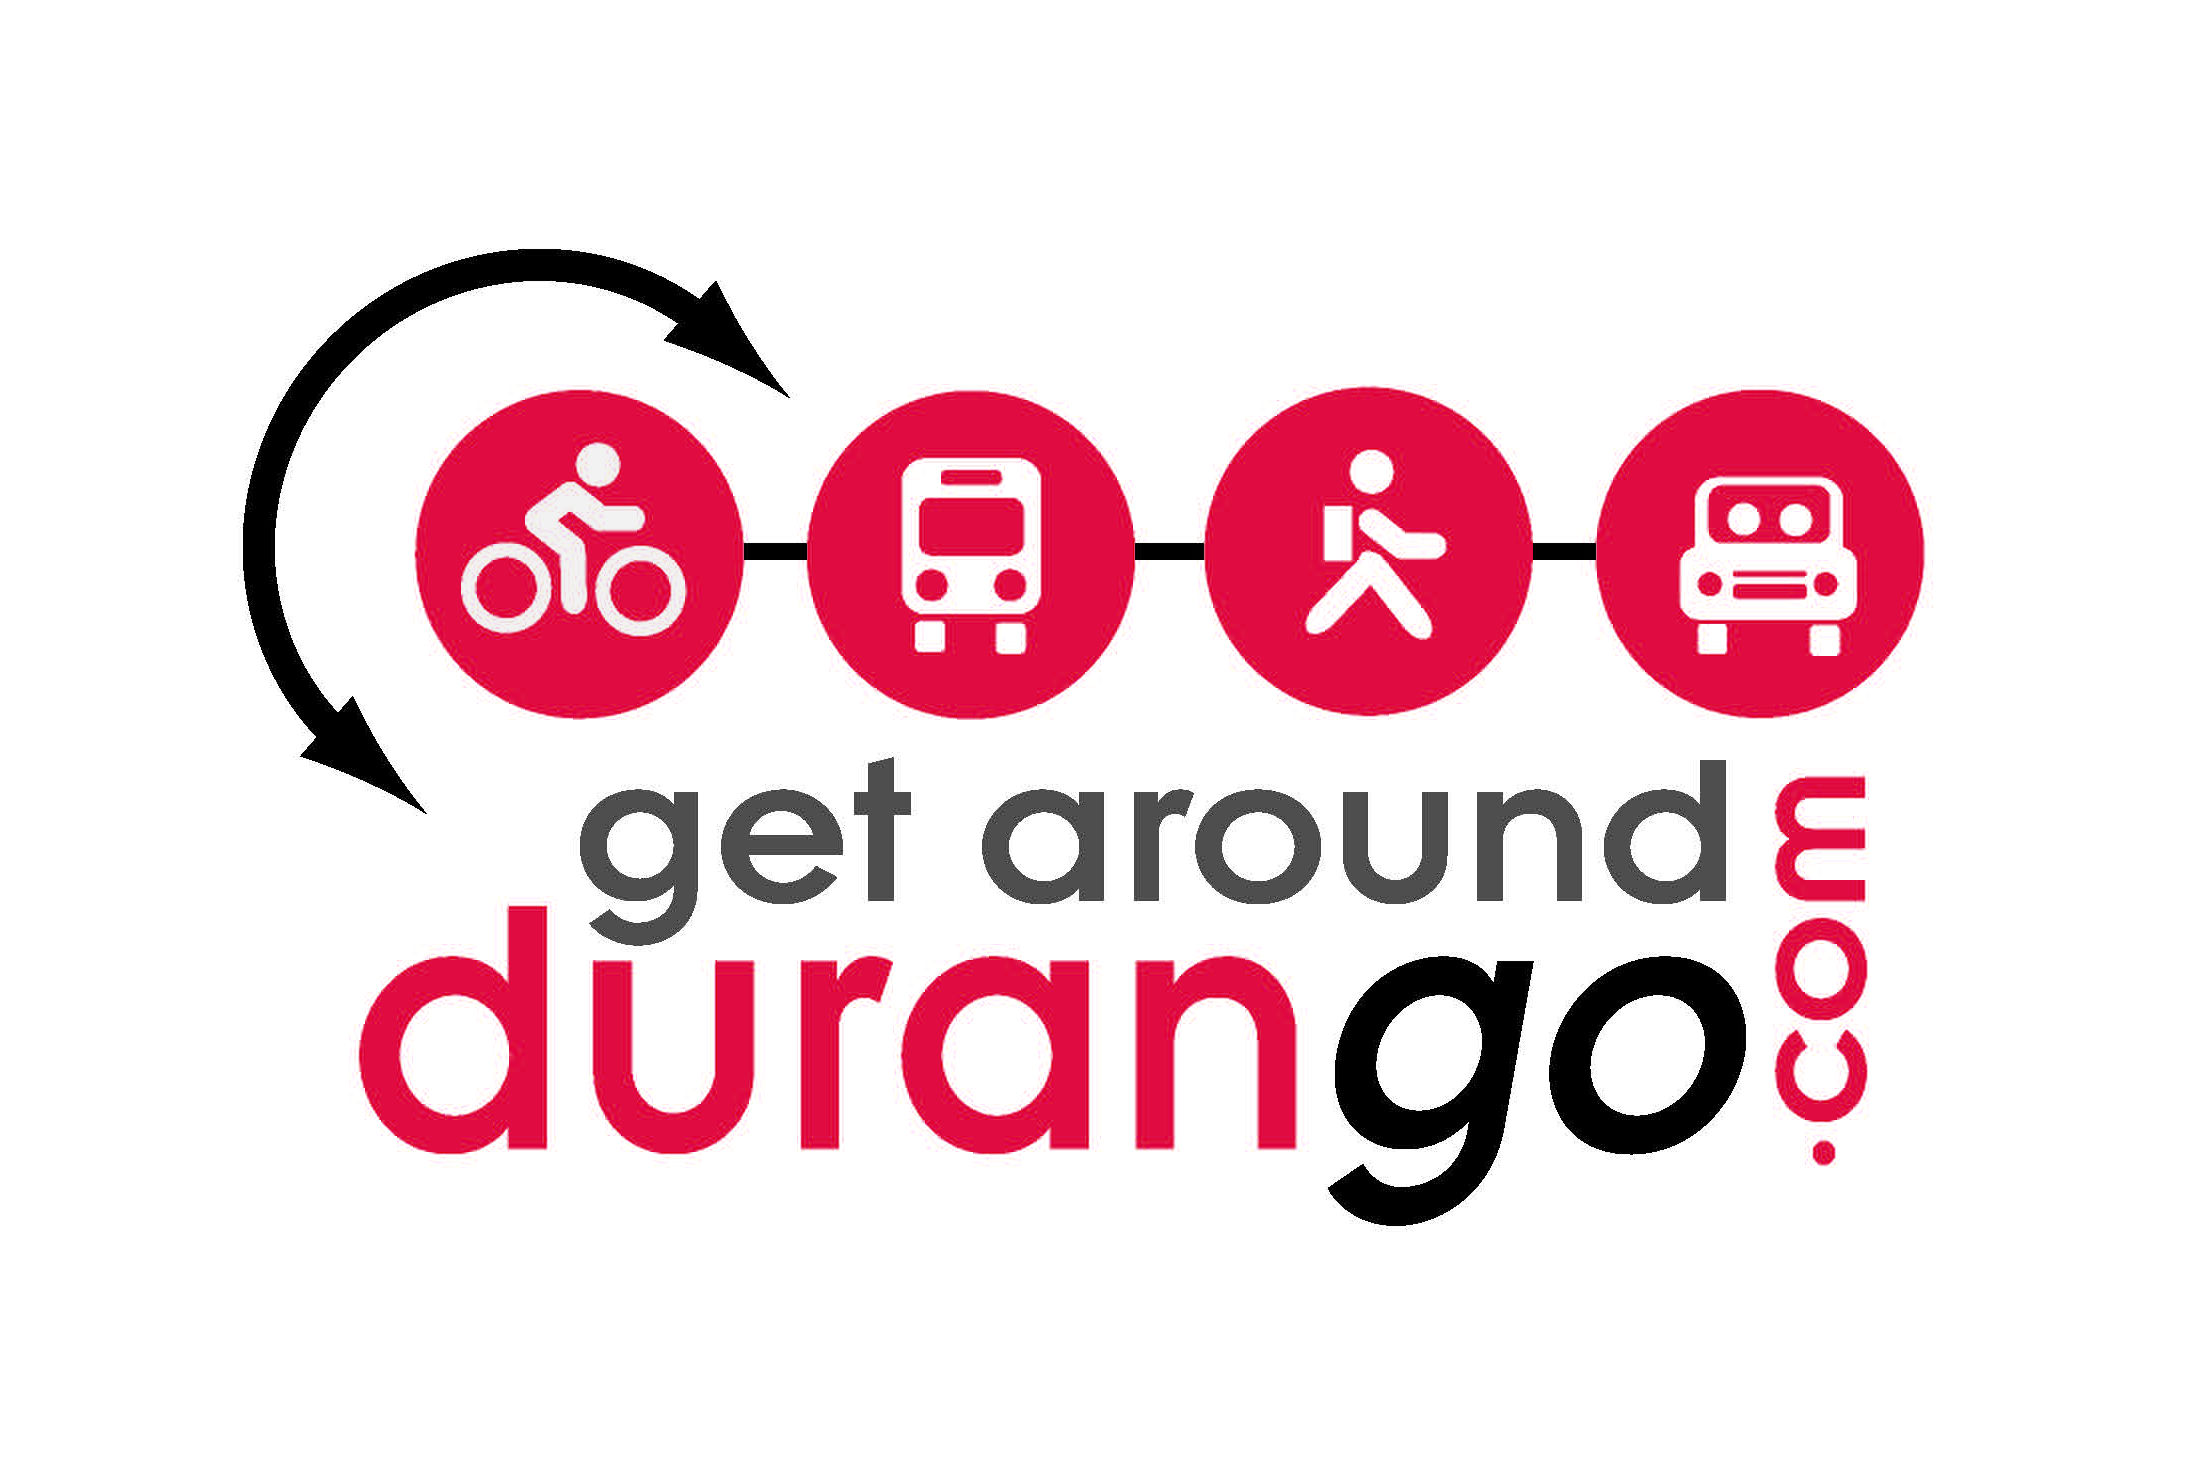 Get around Durango logo